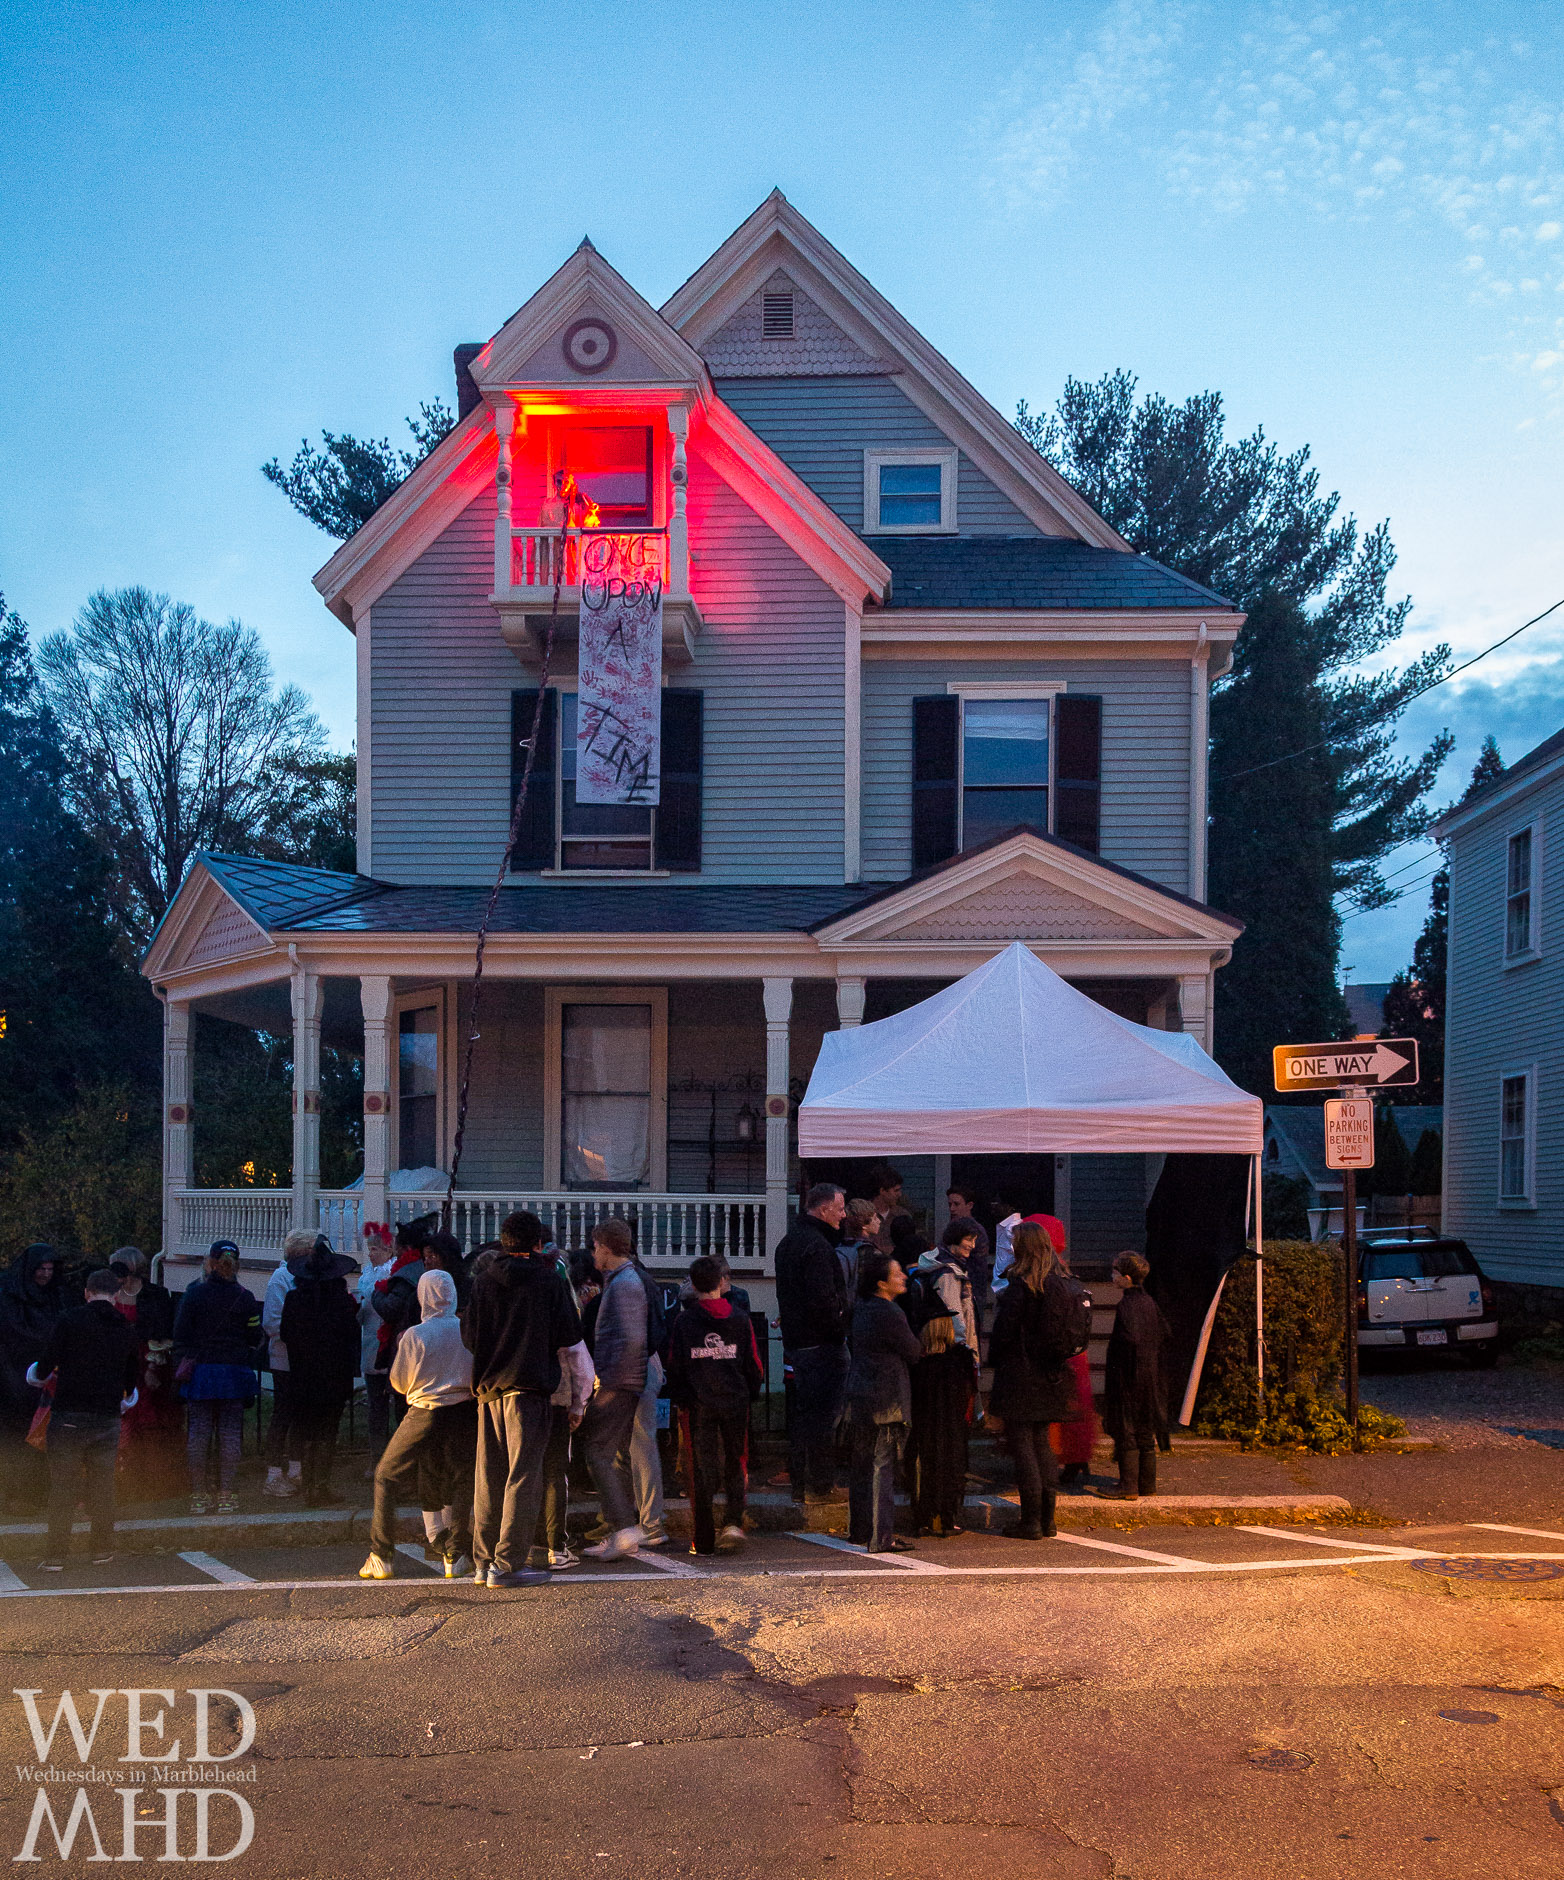 An incredible haunted house depicts twisted fairy tales in Once Upon a Time in Marblehead